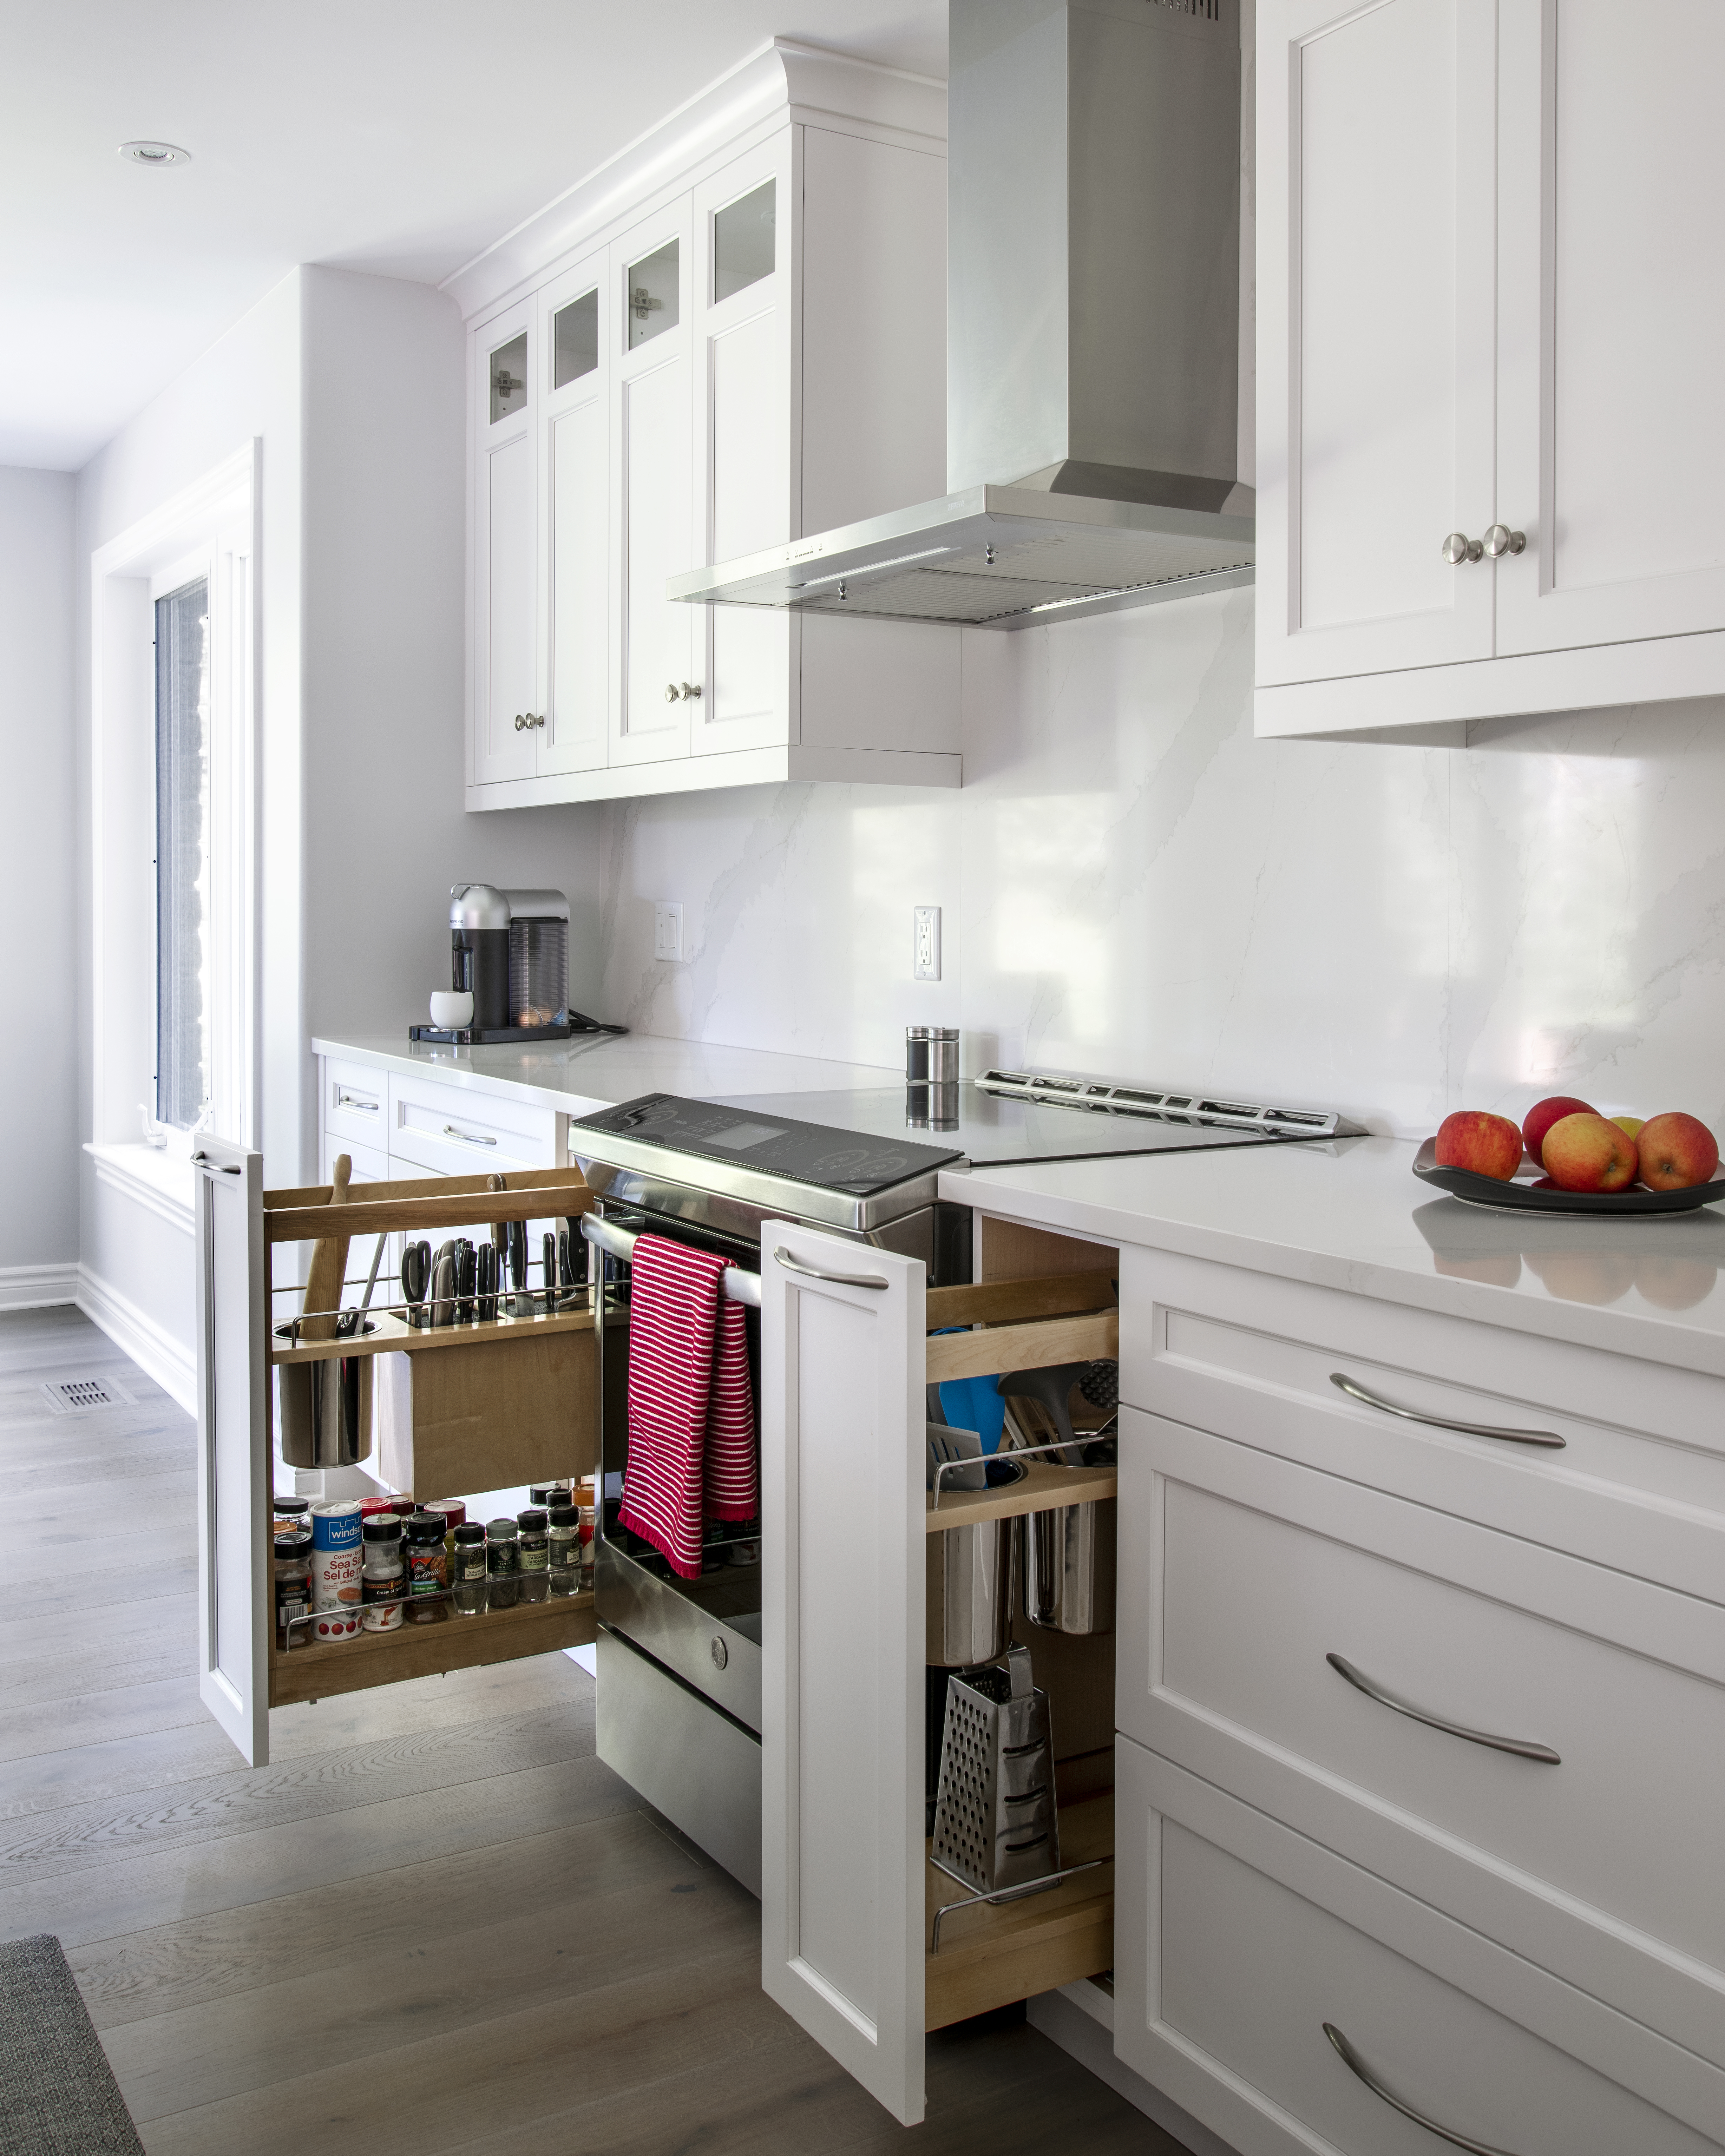 Lower cabinets featuring pull-out spice racks and utensil holders.